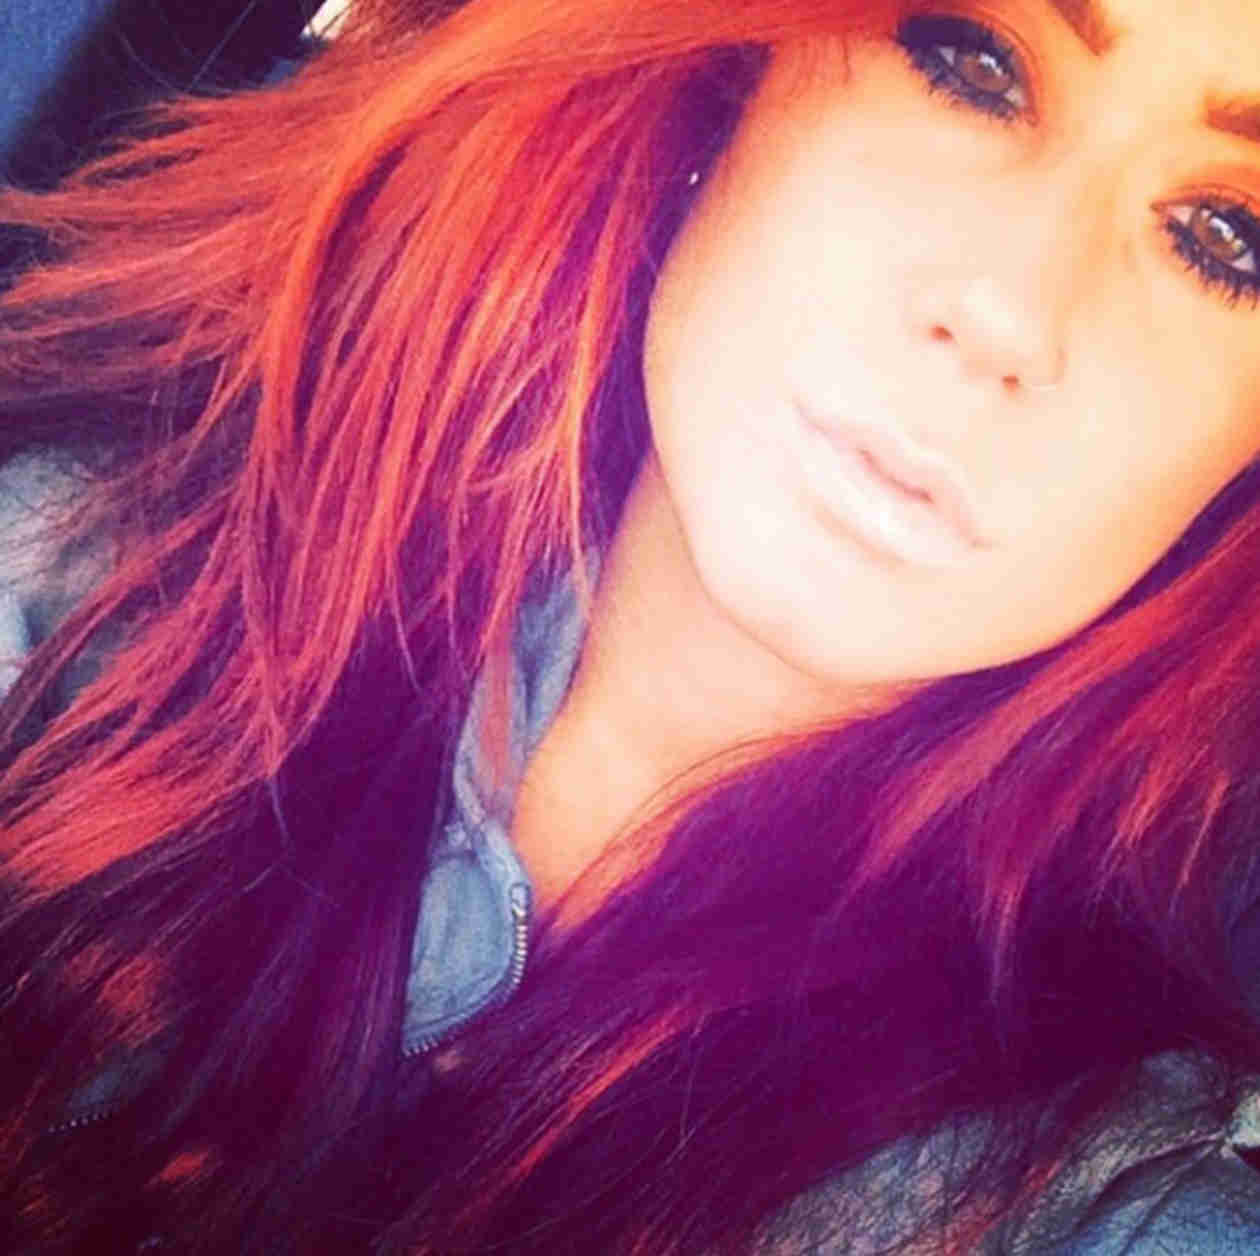 Chelsea Houska Kisses a New Man on Her Birthday! (PHOTO)